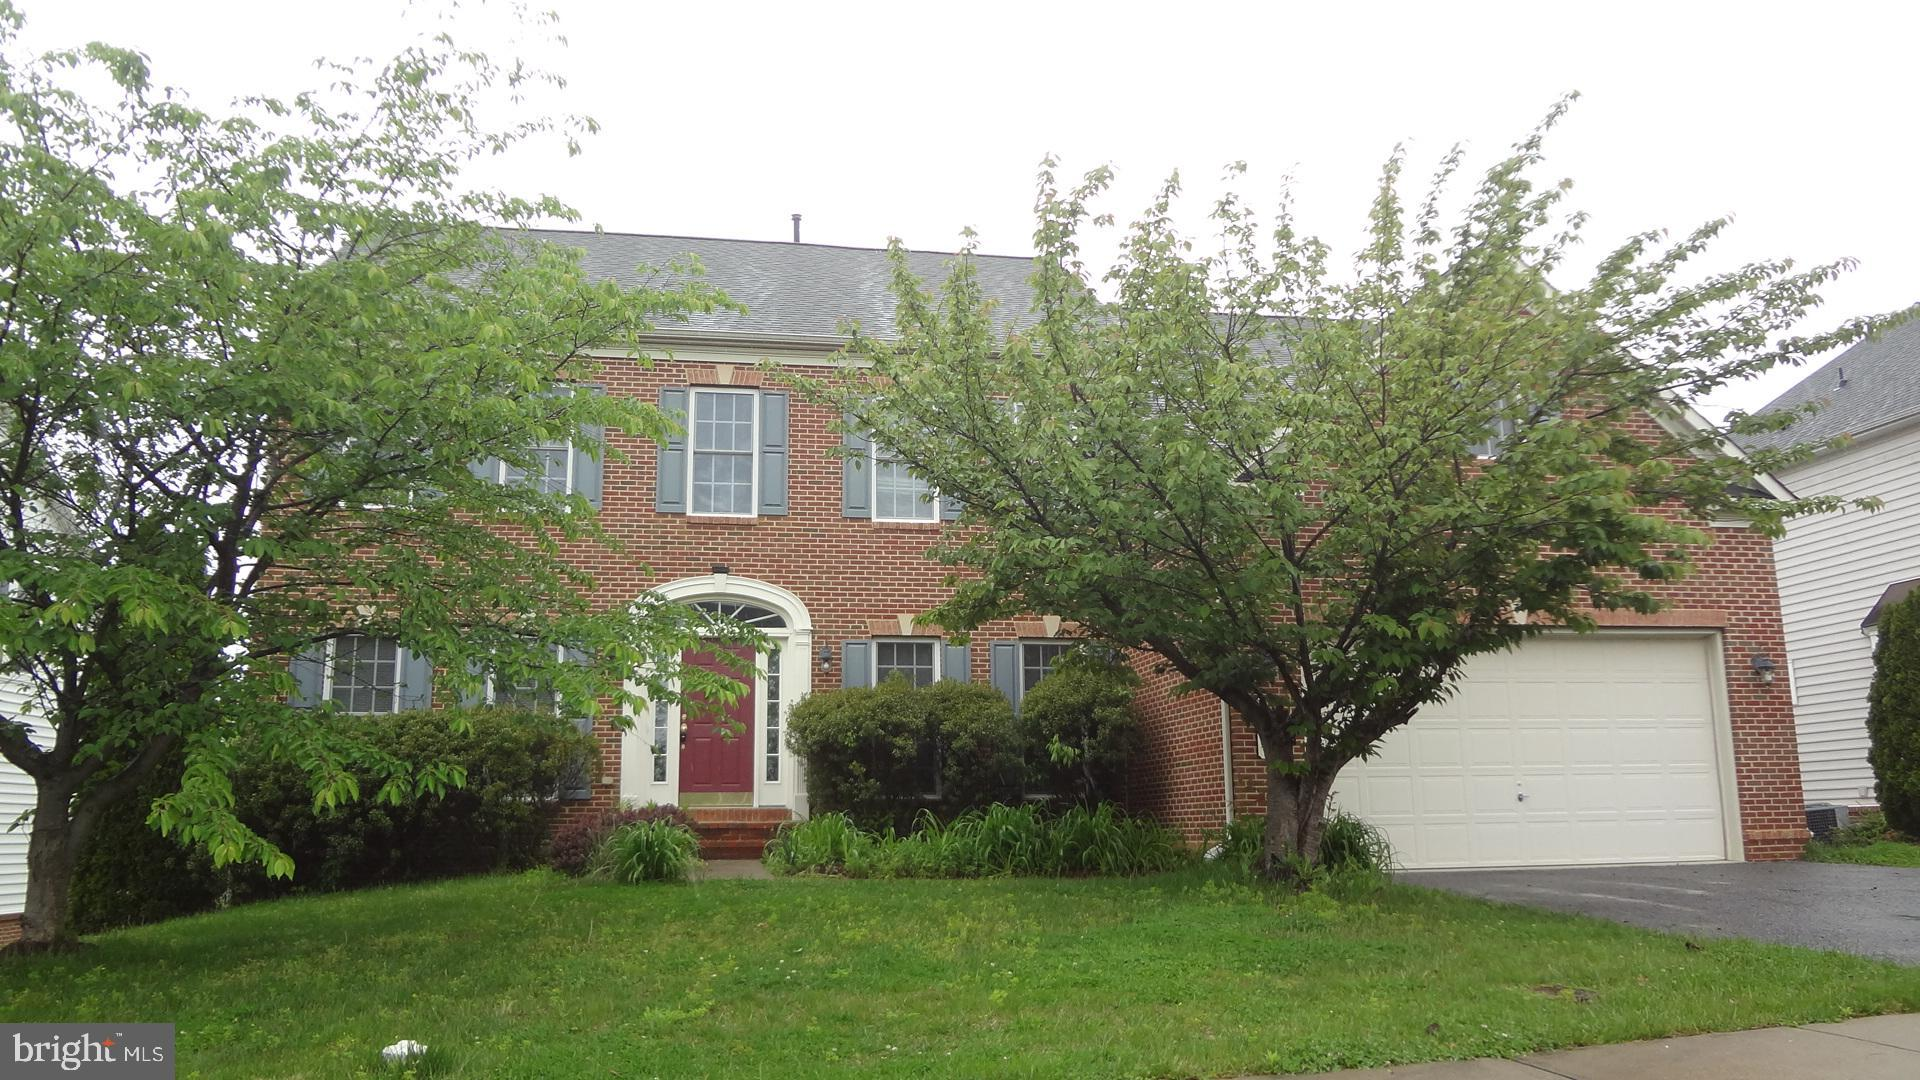 9114 Bowling Green Dr, Frederick, MD, 21704